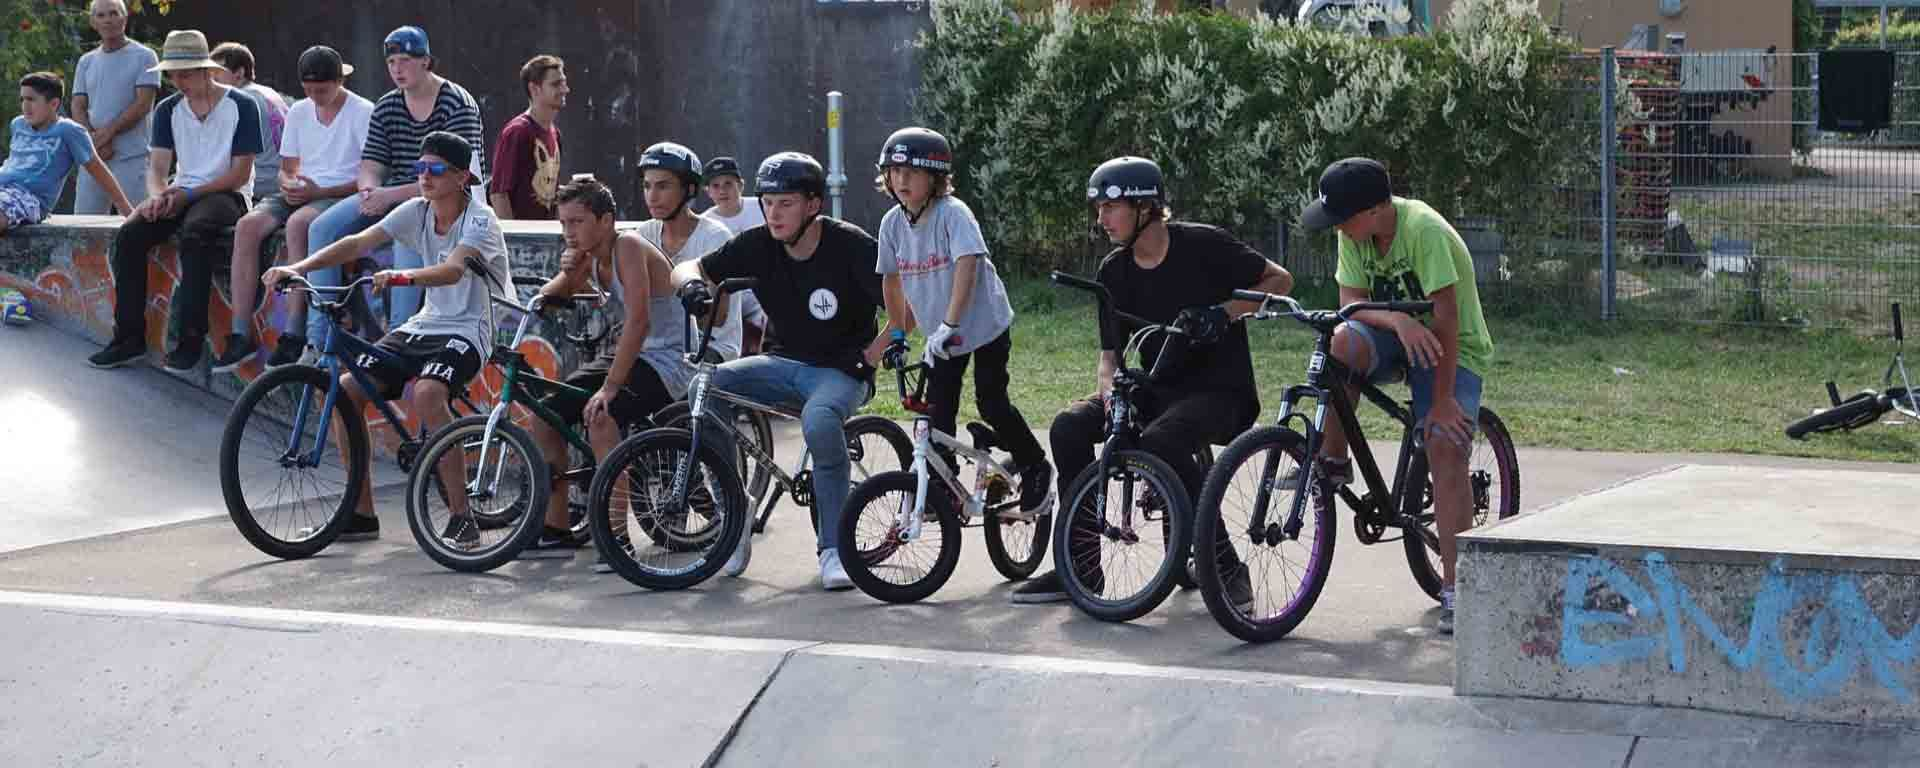 15 Best Bmx Bikes Reviews In 2020 With Images Best Bmx Bmx Bikes Bmx